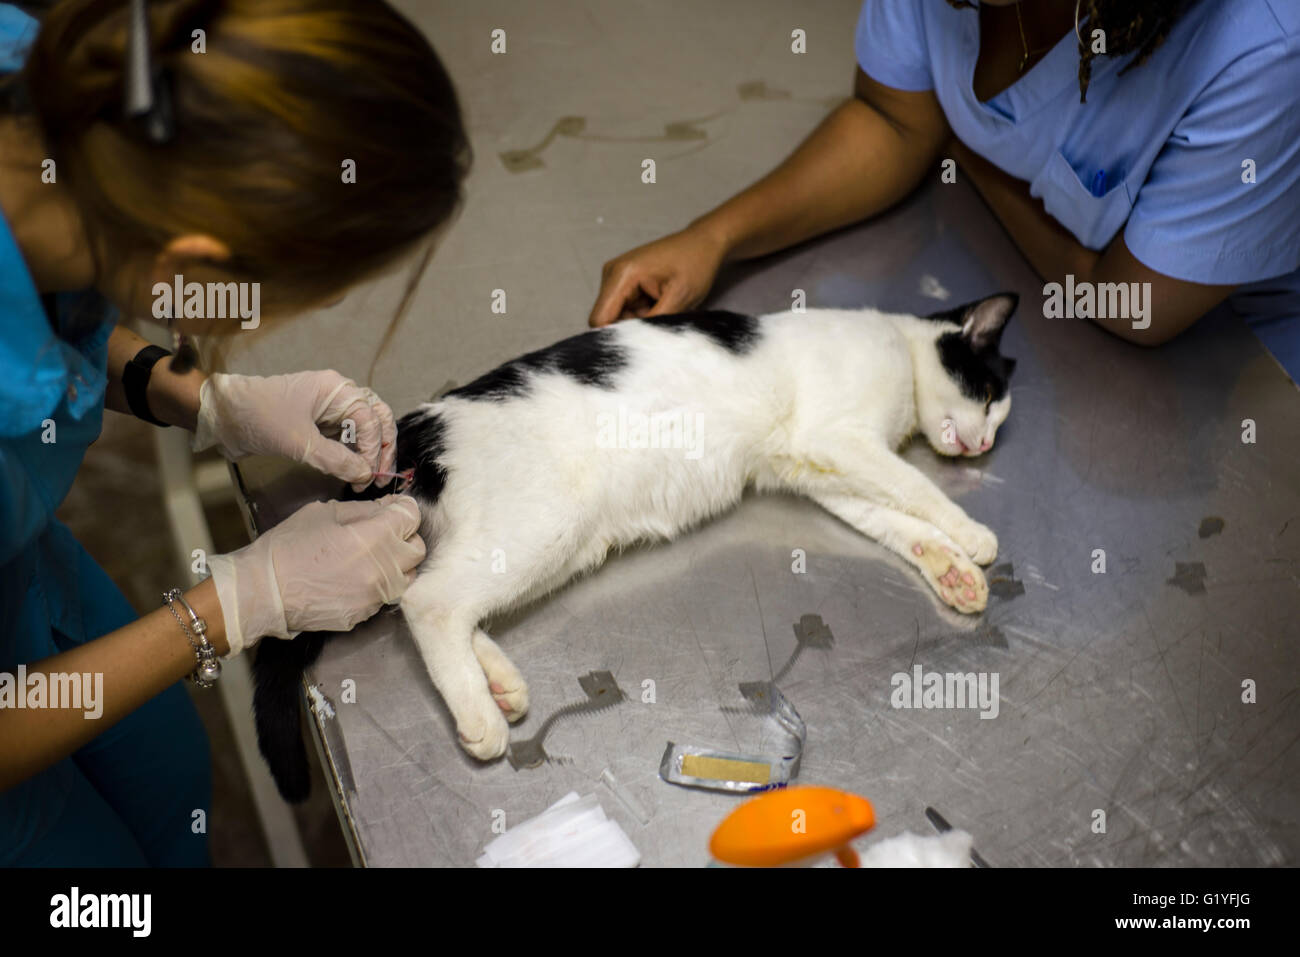 Surgery on a cat in a veterinary clinic.Windhoek. Namibia (Photo by Oleksandr Rupeta) - Stock Image